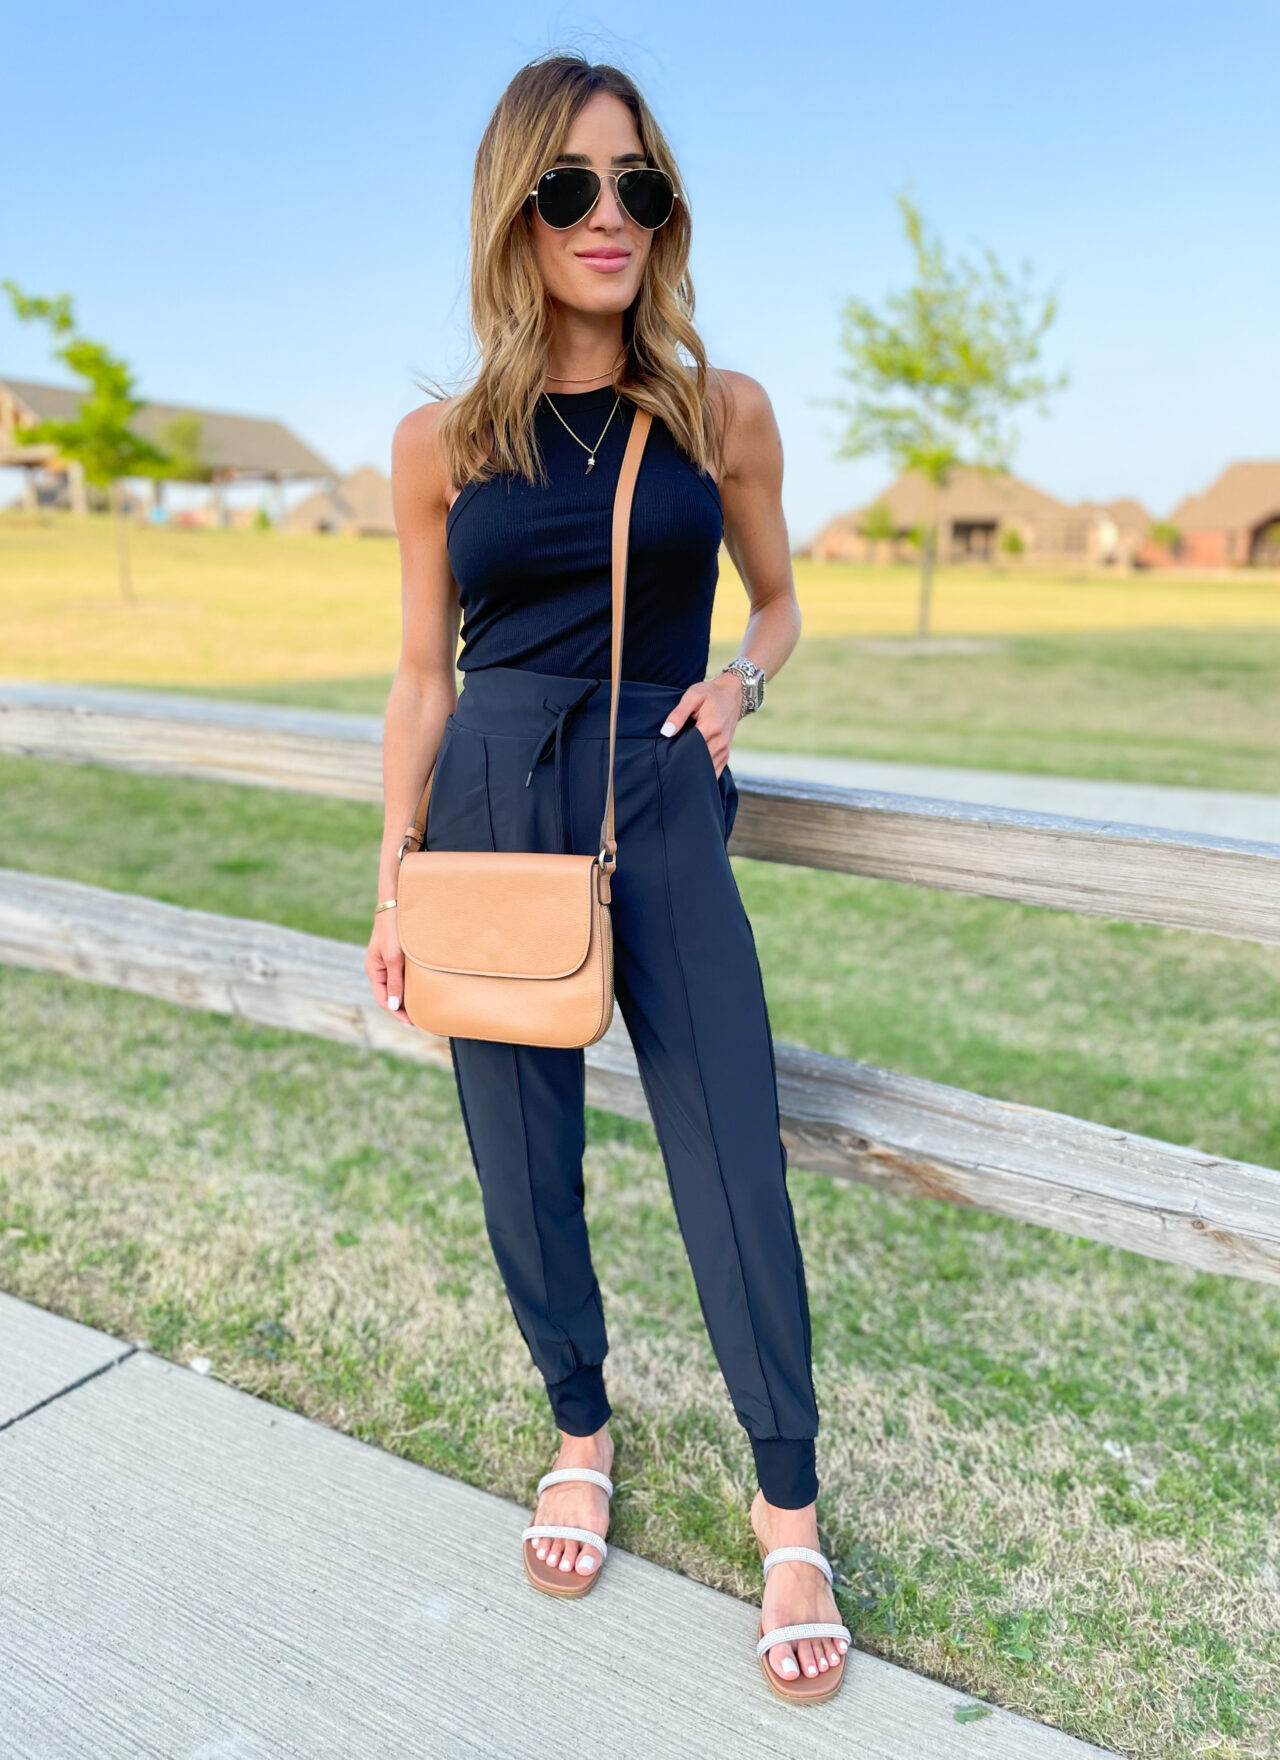 lifestyle and fashion blogger alexis belbel shares a few ways to style woven drawstring joggers from Zella at Nordstrom. Wearing with a black ribbed tank and denim jacket and slide sandals | adoubledose.com